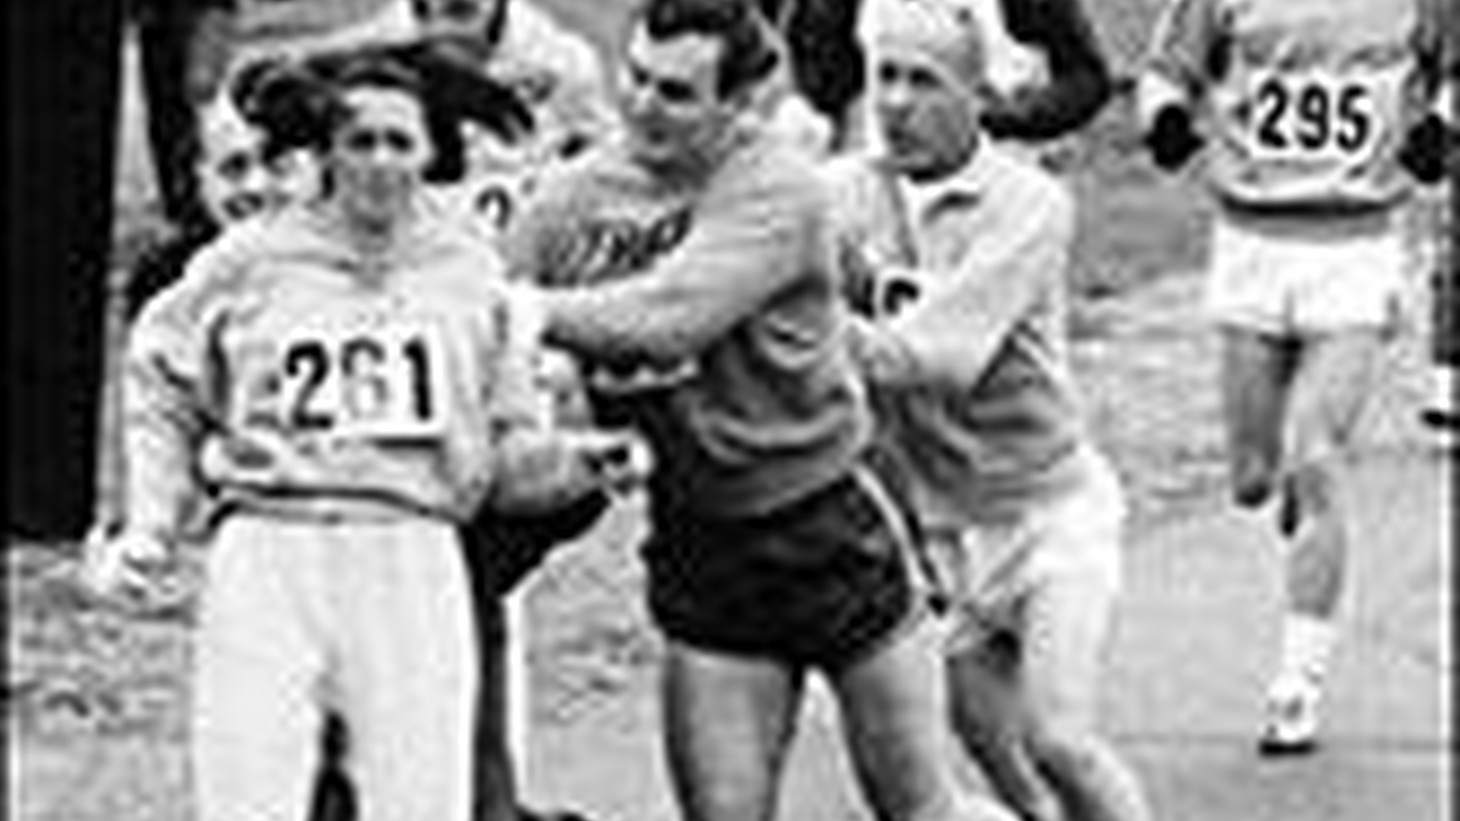 It was forty years ago this week that a woman named Kathrine Switzer put on a baggy pair of sweat pants, an oversized sweat shirt, tied her long hair up under a cap and officially entered herself in the male-only Boston marathon as K.V. Switzer. 1967. The heart of the free-wheeling Bob Dylan. make-love-not-war, women's liberation '60's and yet women were considered too fragile to run the grueling marathon. Empirical tests over the last four decades have proven women to be not only capable of endurance events but even superior to men in  certain aspects of pain tolerance and oxygen management...